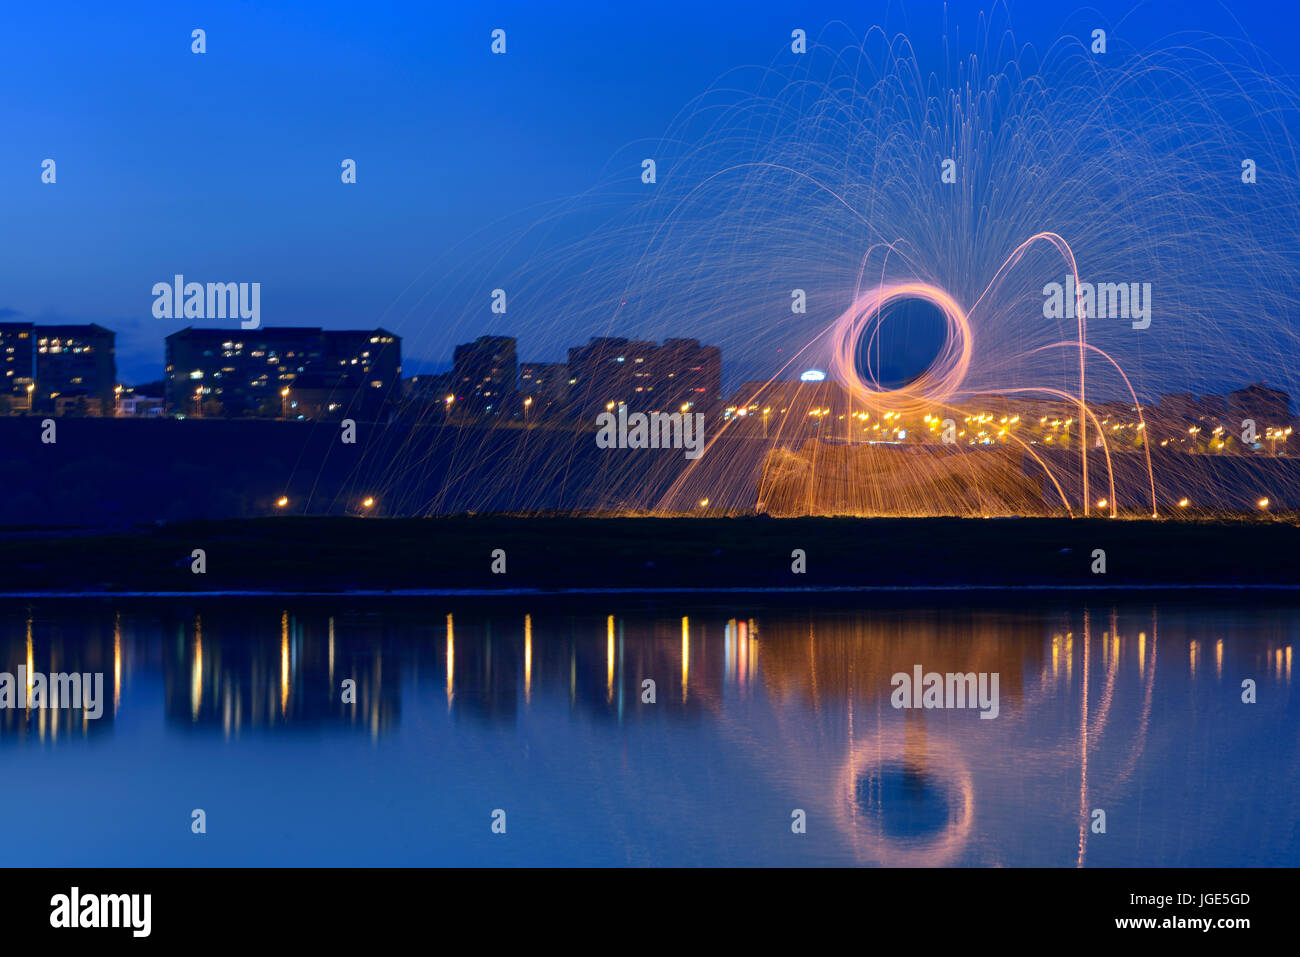 Hot Golden Sparks Flying from Man Spinning Burning Steel Wool near River with Water Reflection. Long Exposure Photography Stock Photo